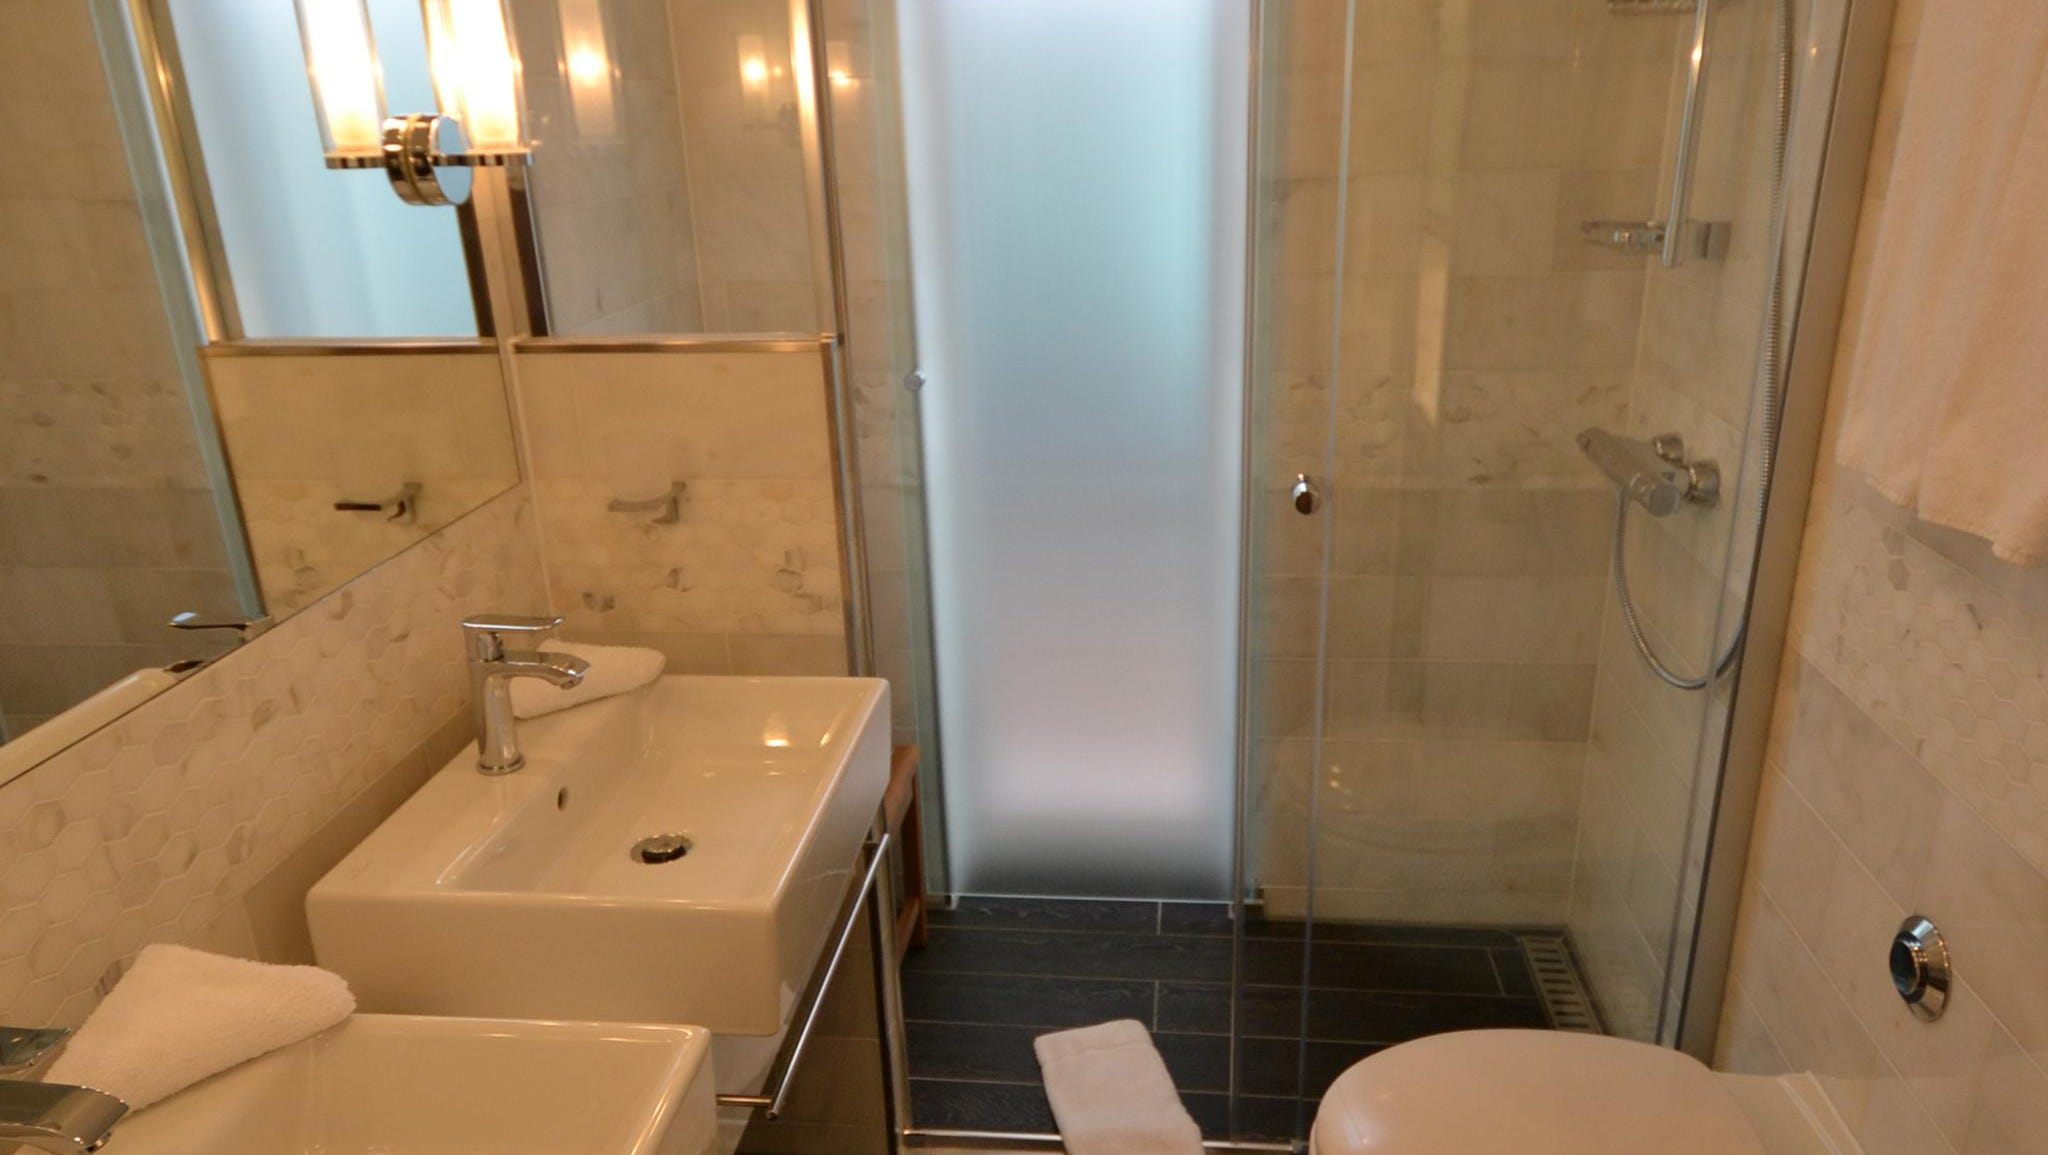 Explorer Suite bathrooms feature two sinks and large walk-in showers.